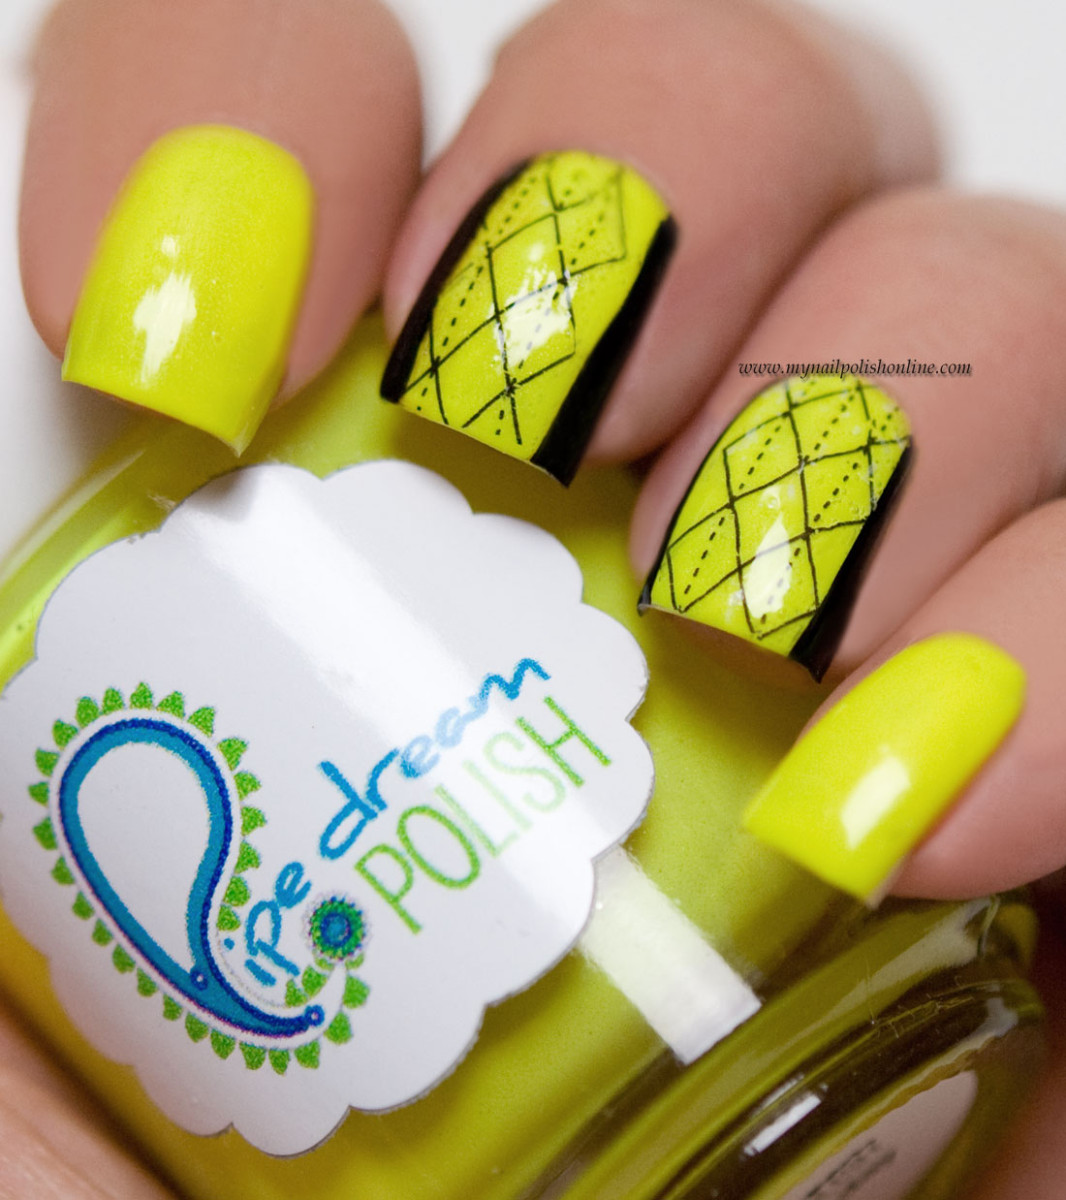 Yellow neon nail art with nail tattoos my nail polish online neon nail art with nail tattoos prinsesfo Choice Image